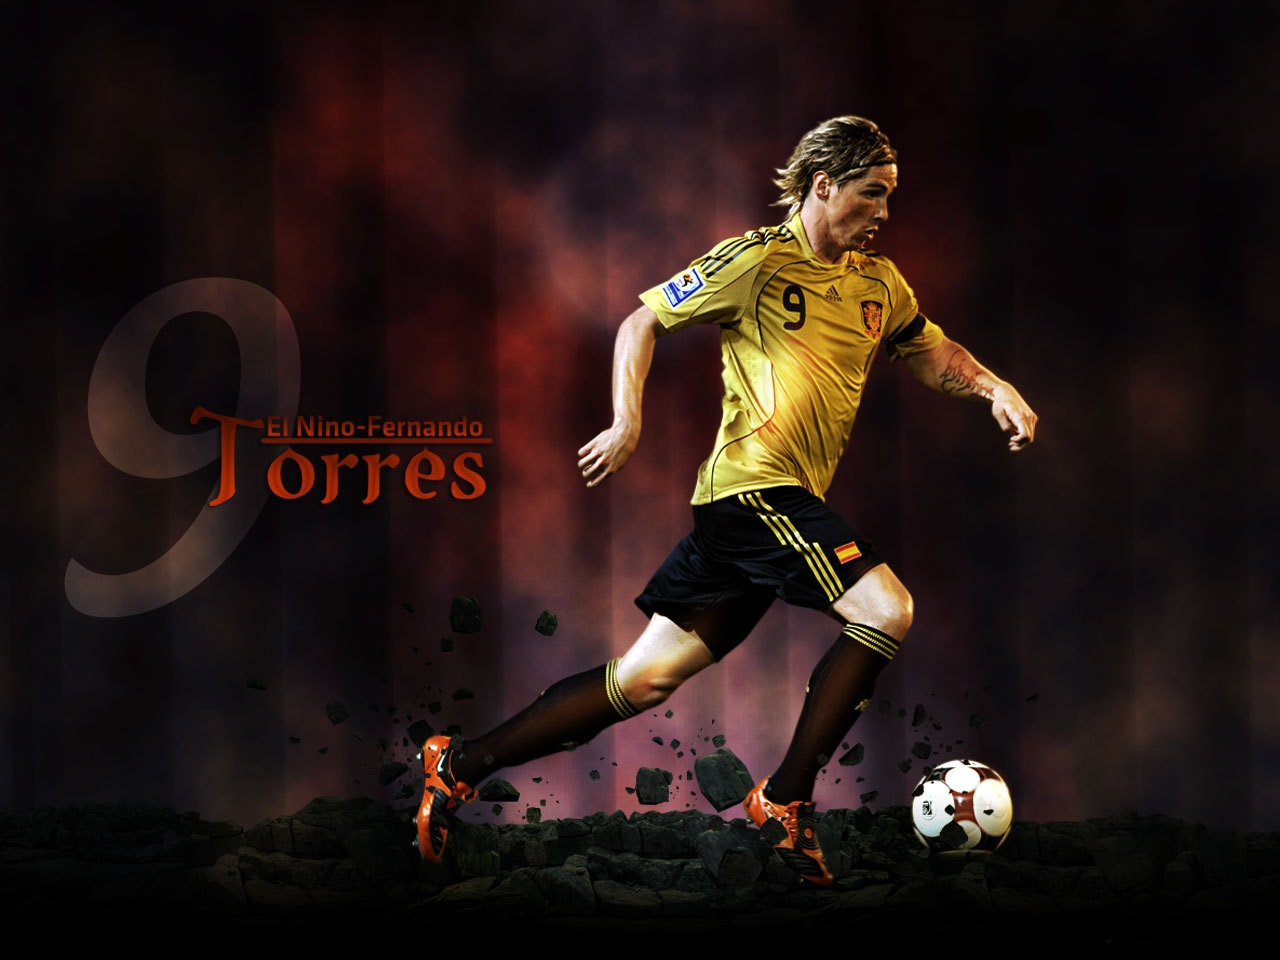 Fernando Torres Latest HD Wallpapers 2013 All About HD Wallpapers 1280x960